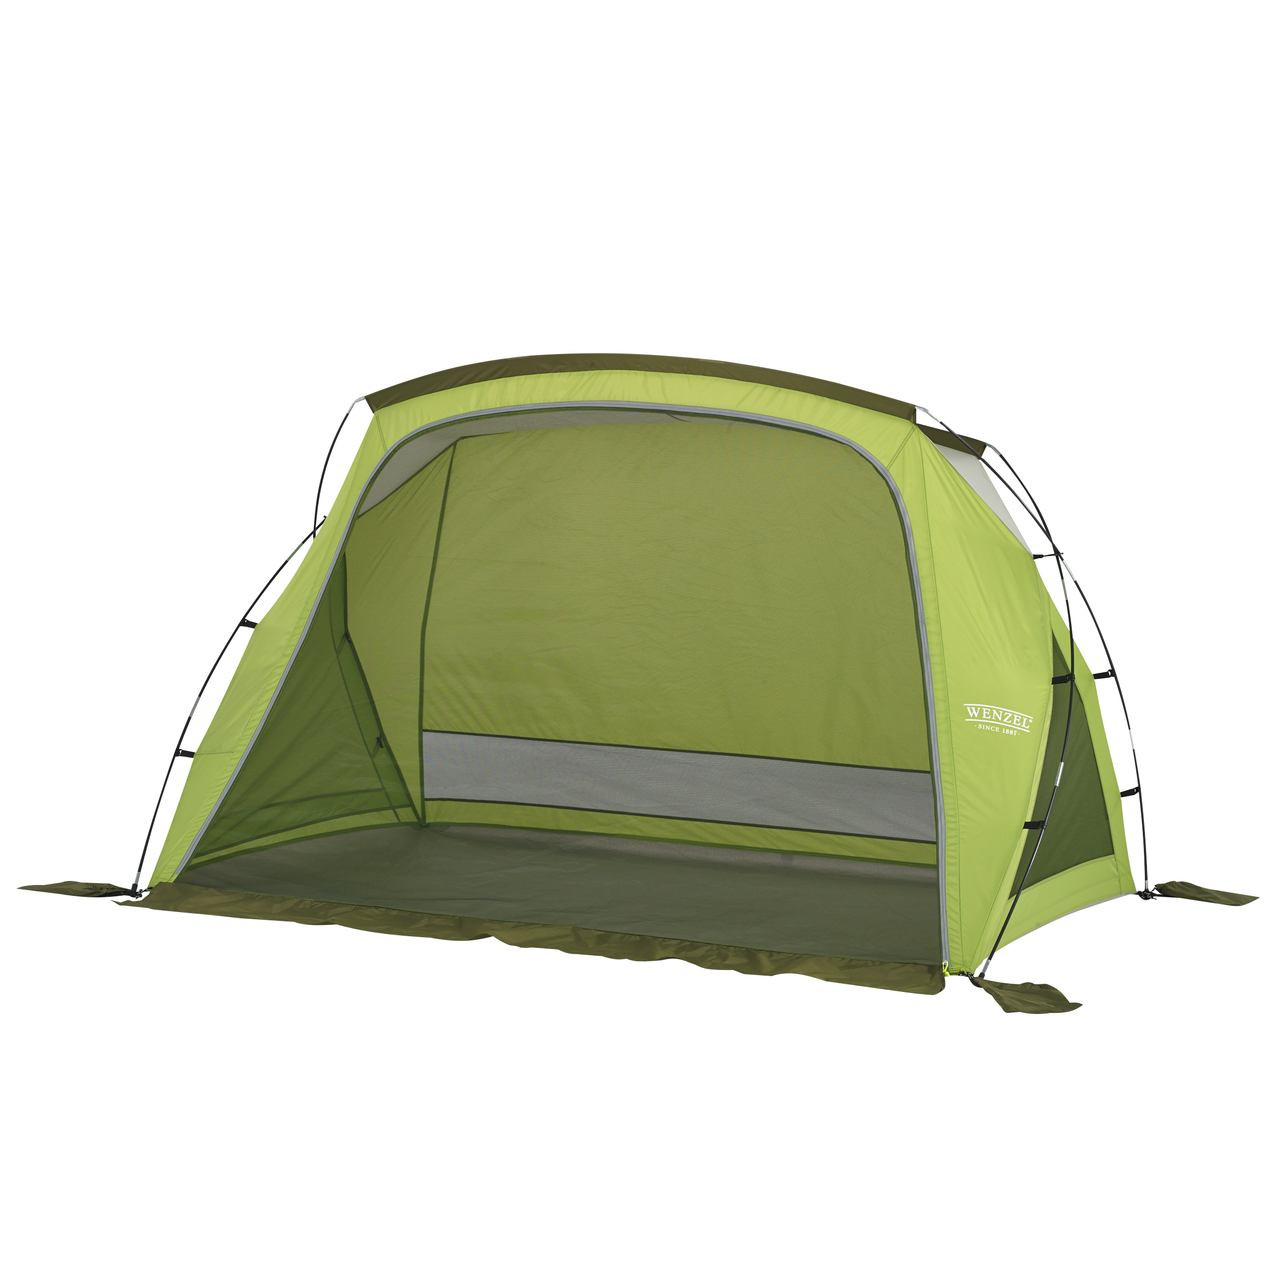 Wenzel Grotto shelter tent, green, setup with the main screen door closed and the side screen windows closed